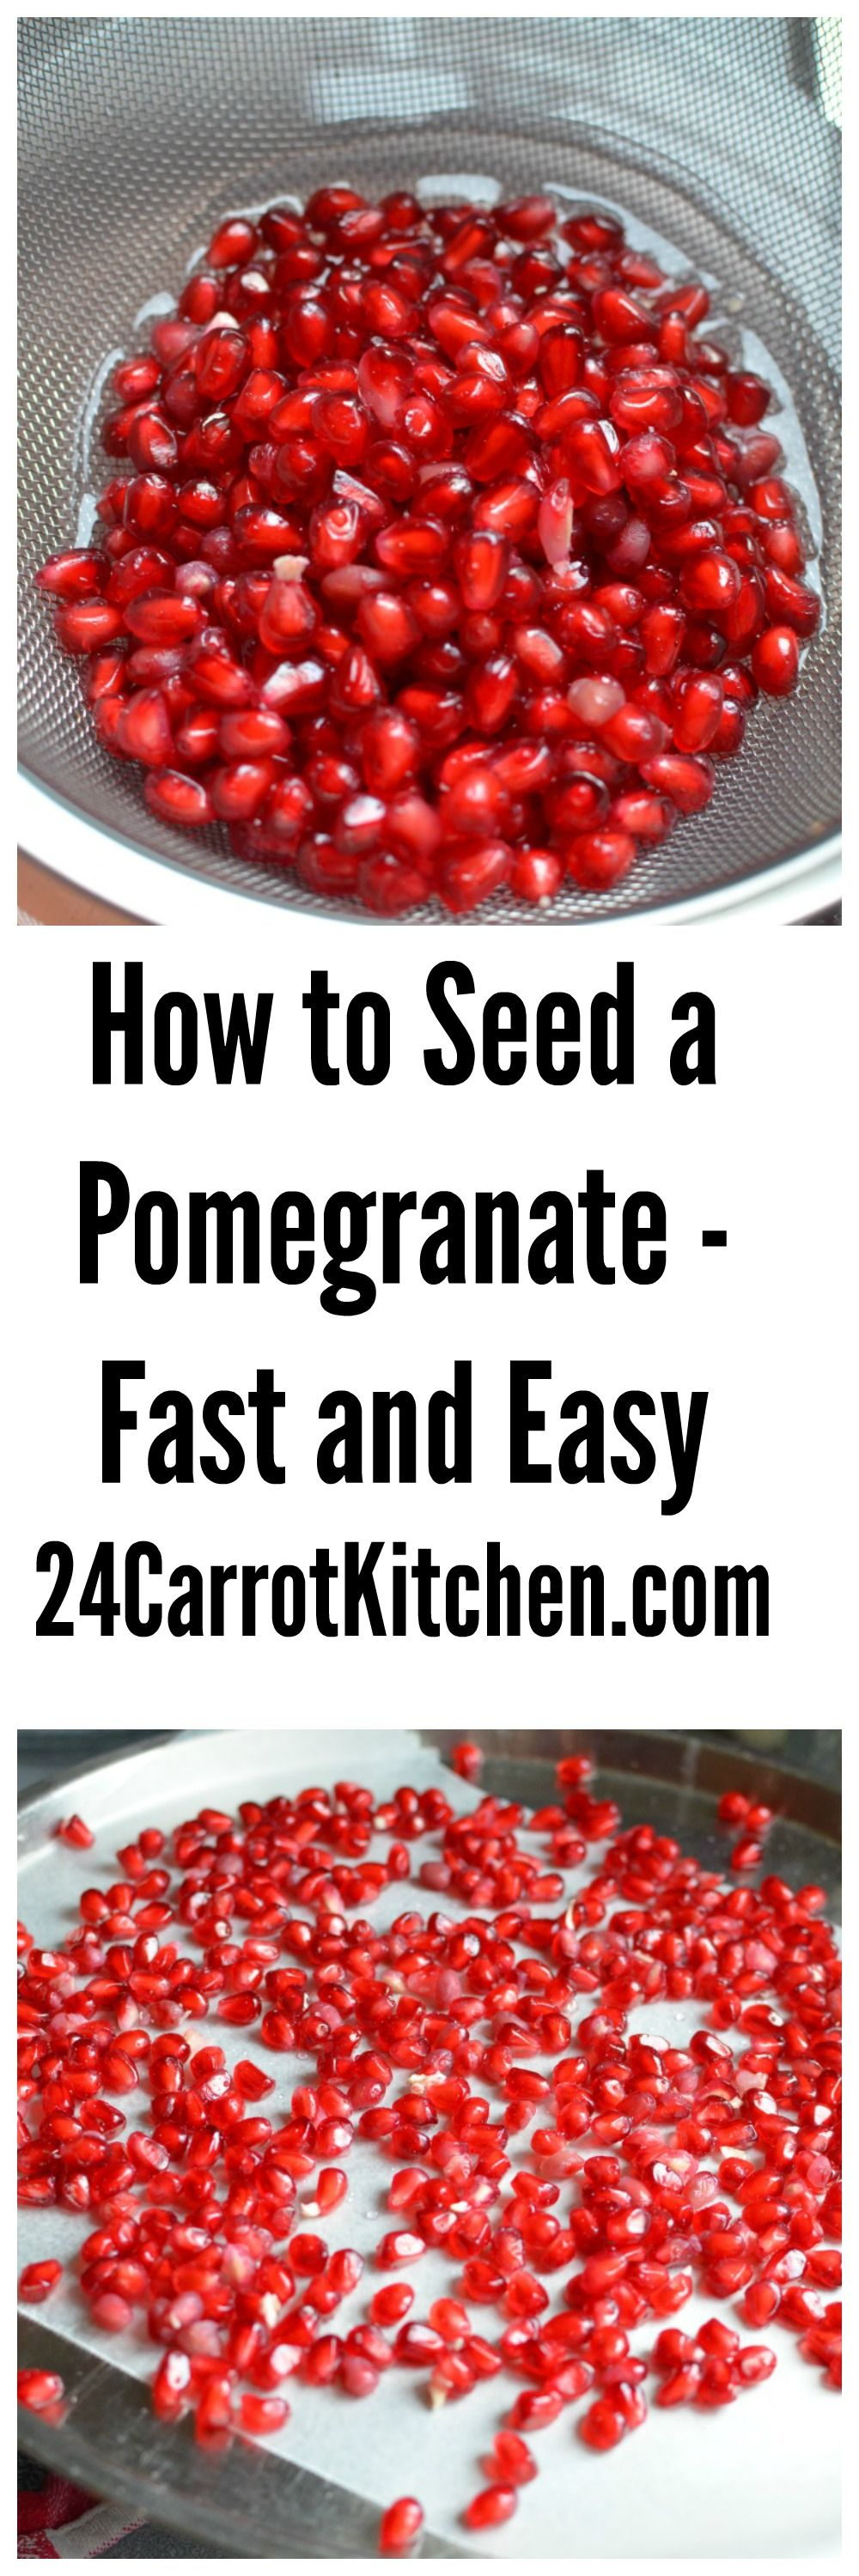 how to get seeds from pomegranate